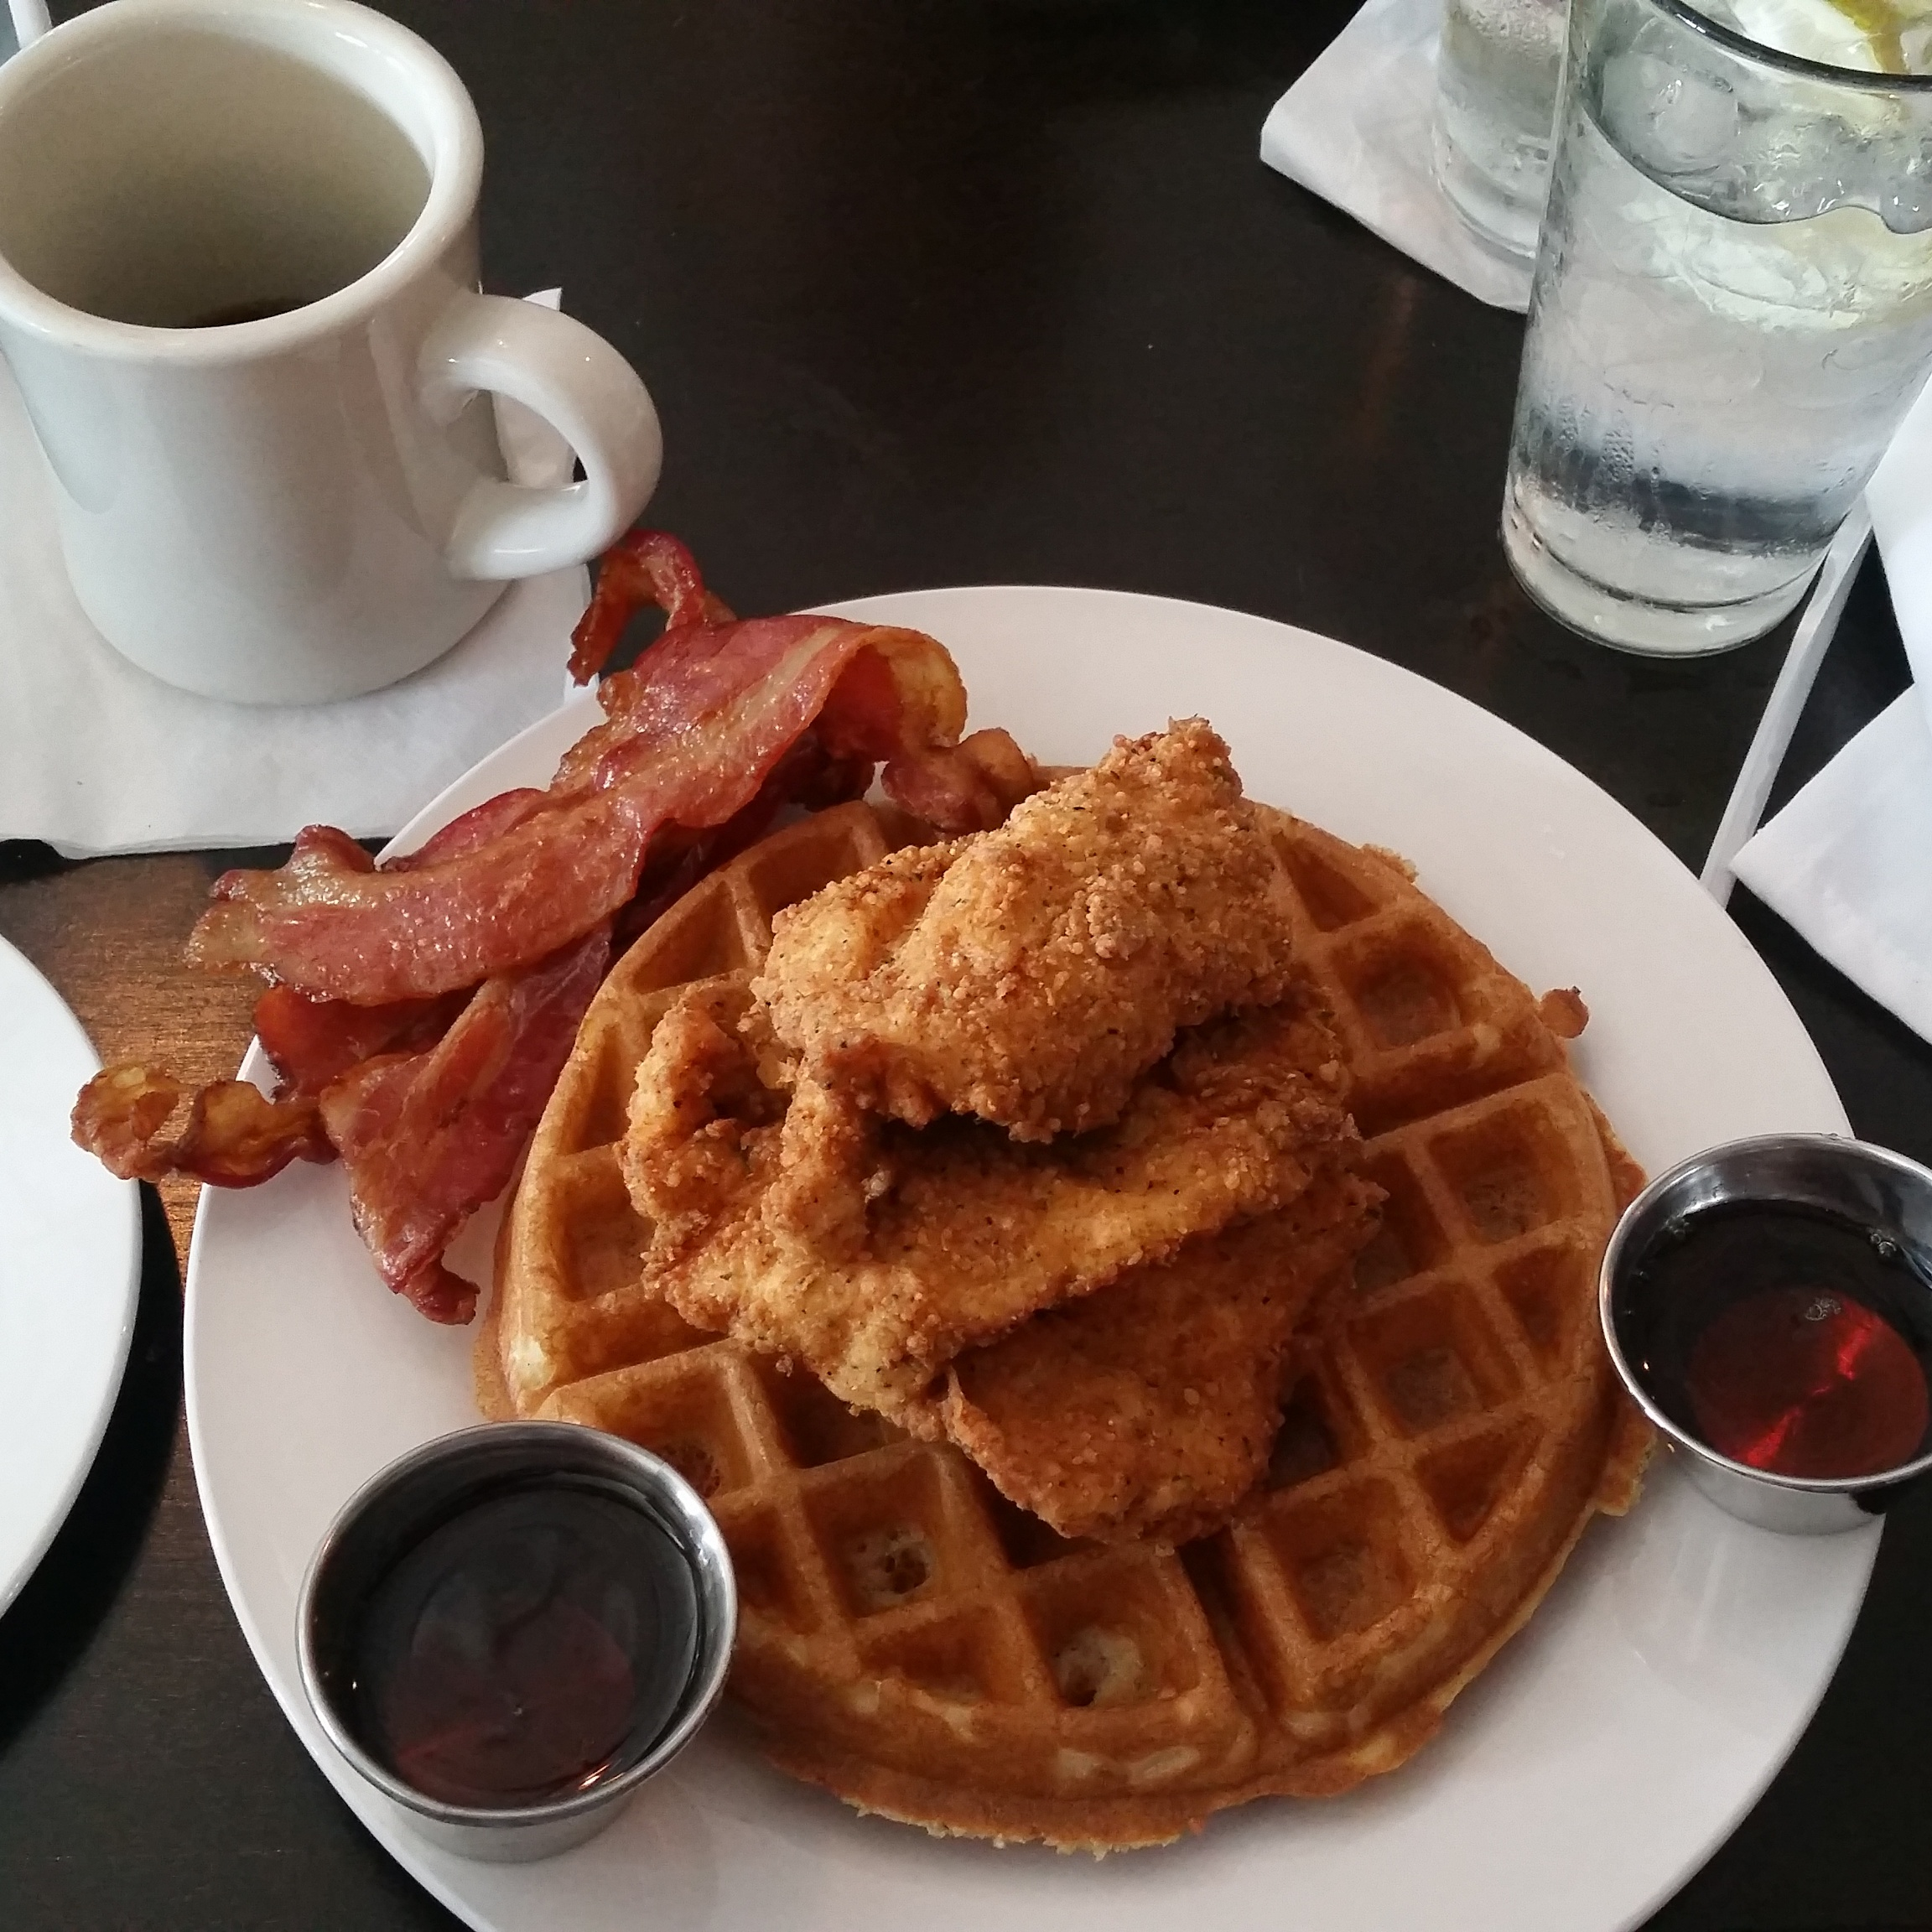 chicken and waffles from the corner grille college park ga